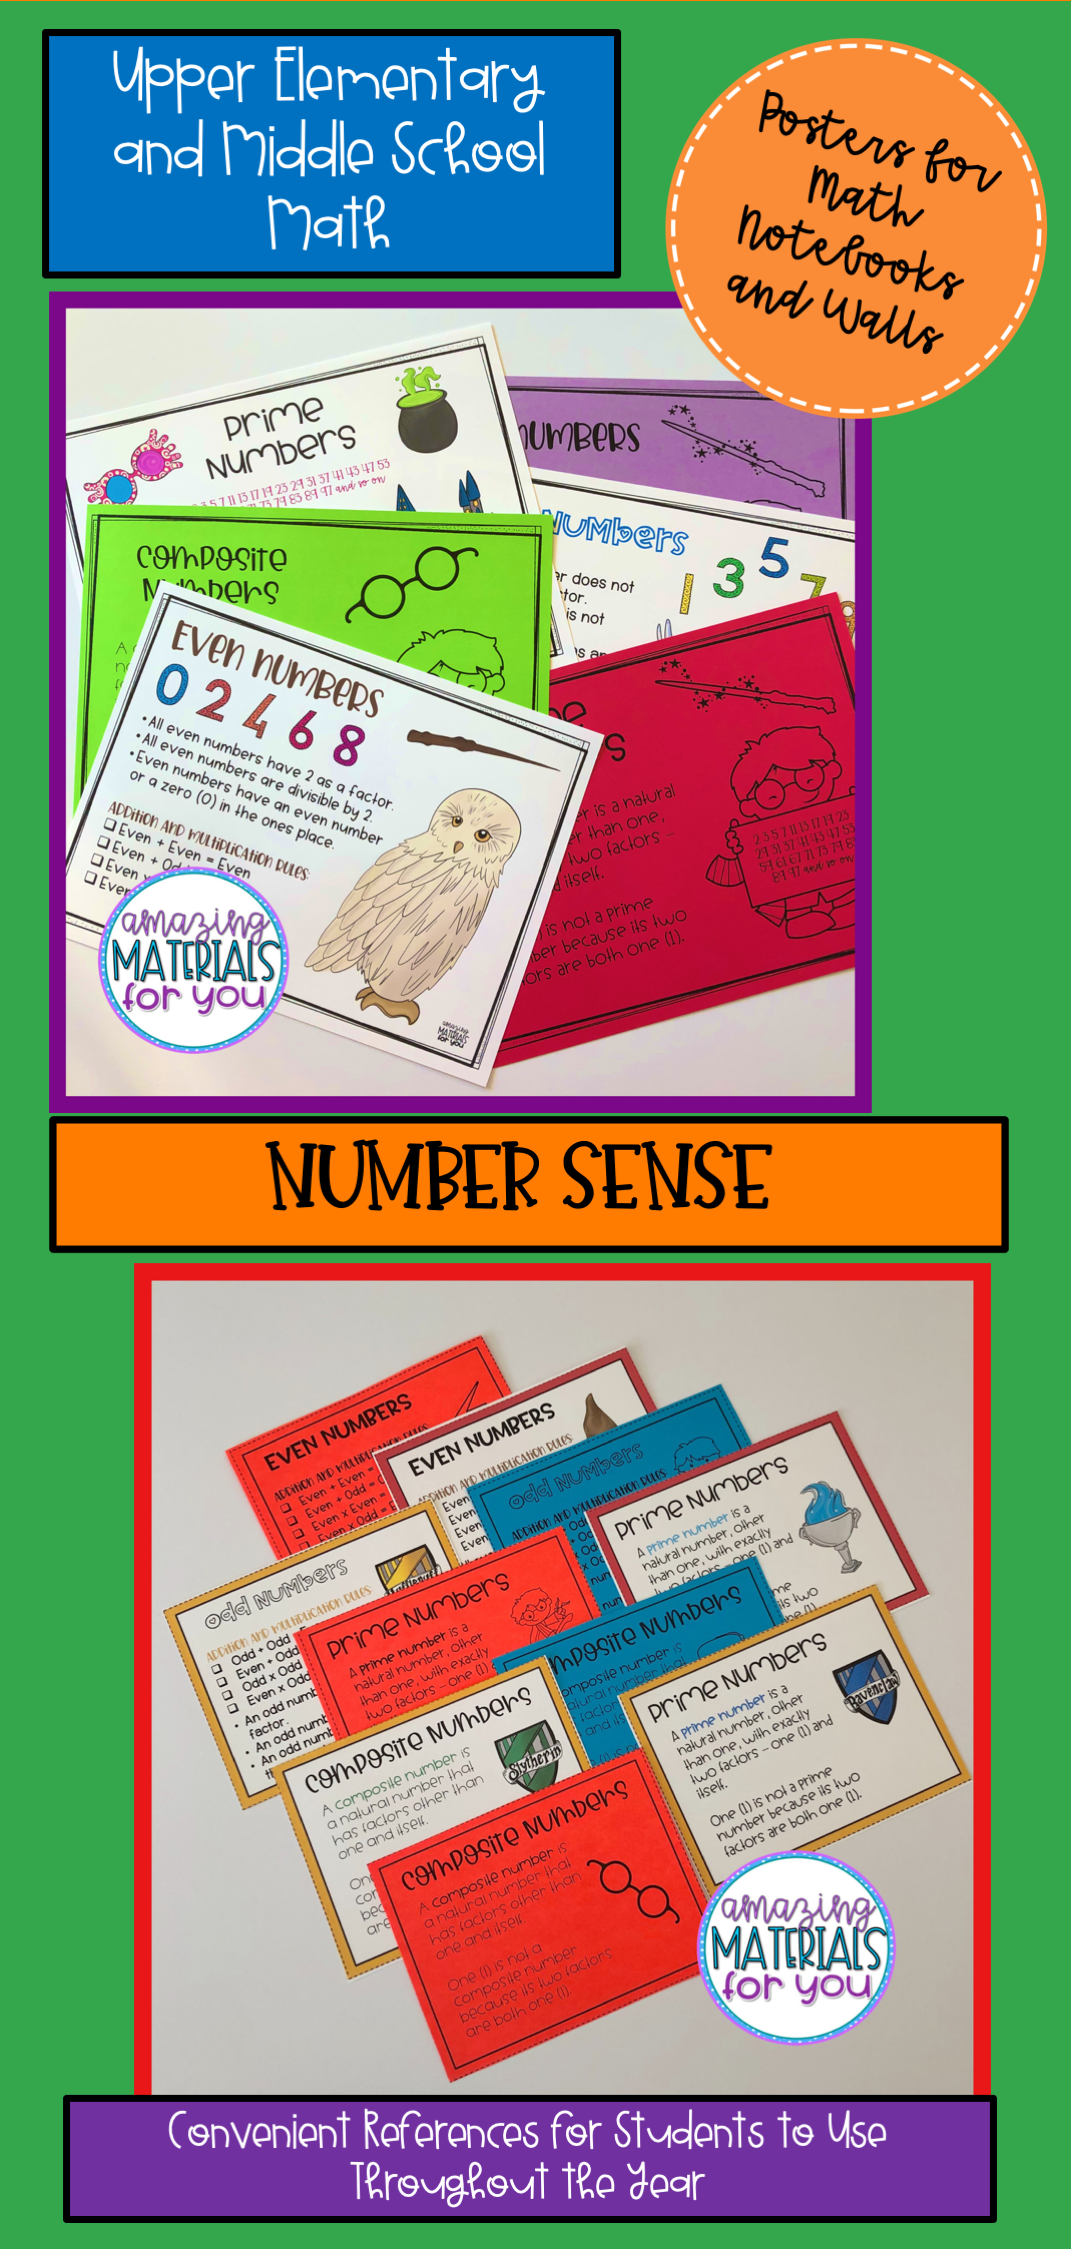 16 Prime And Composite Numbers Worksheets Esl Worksheets